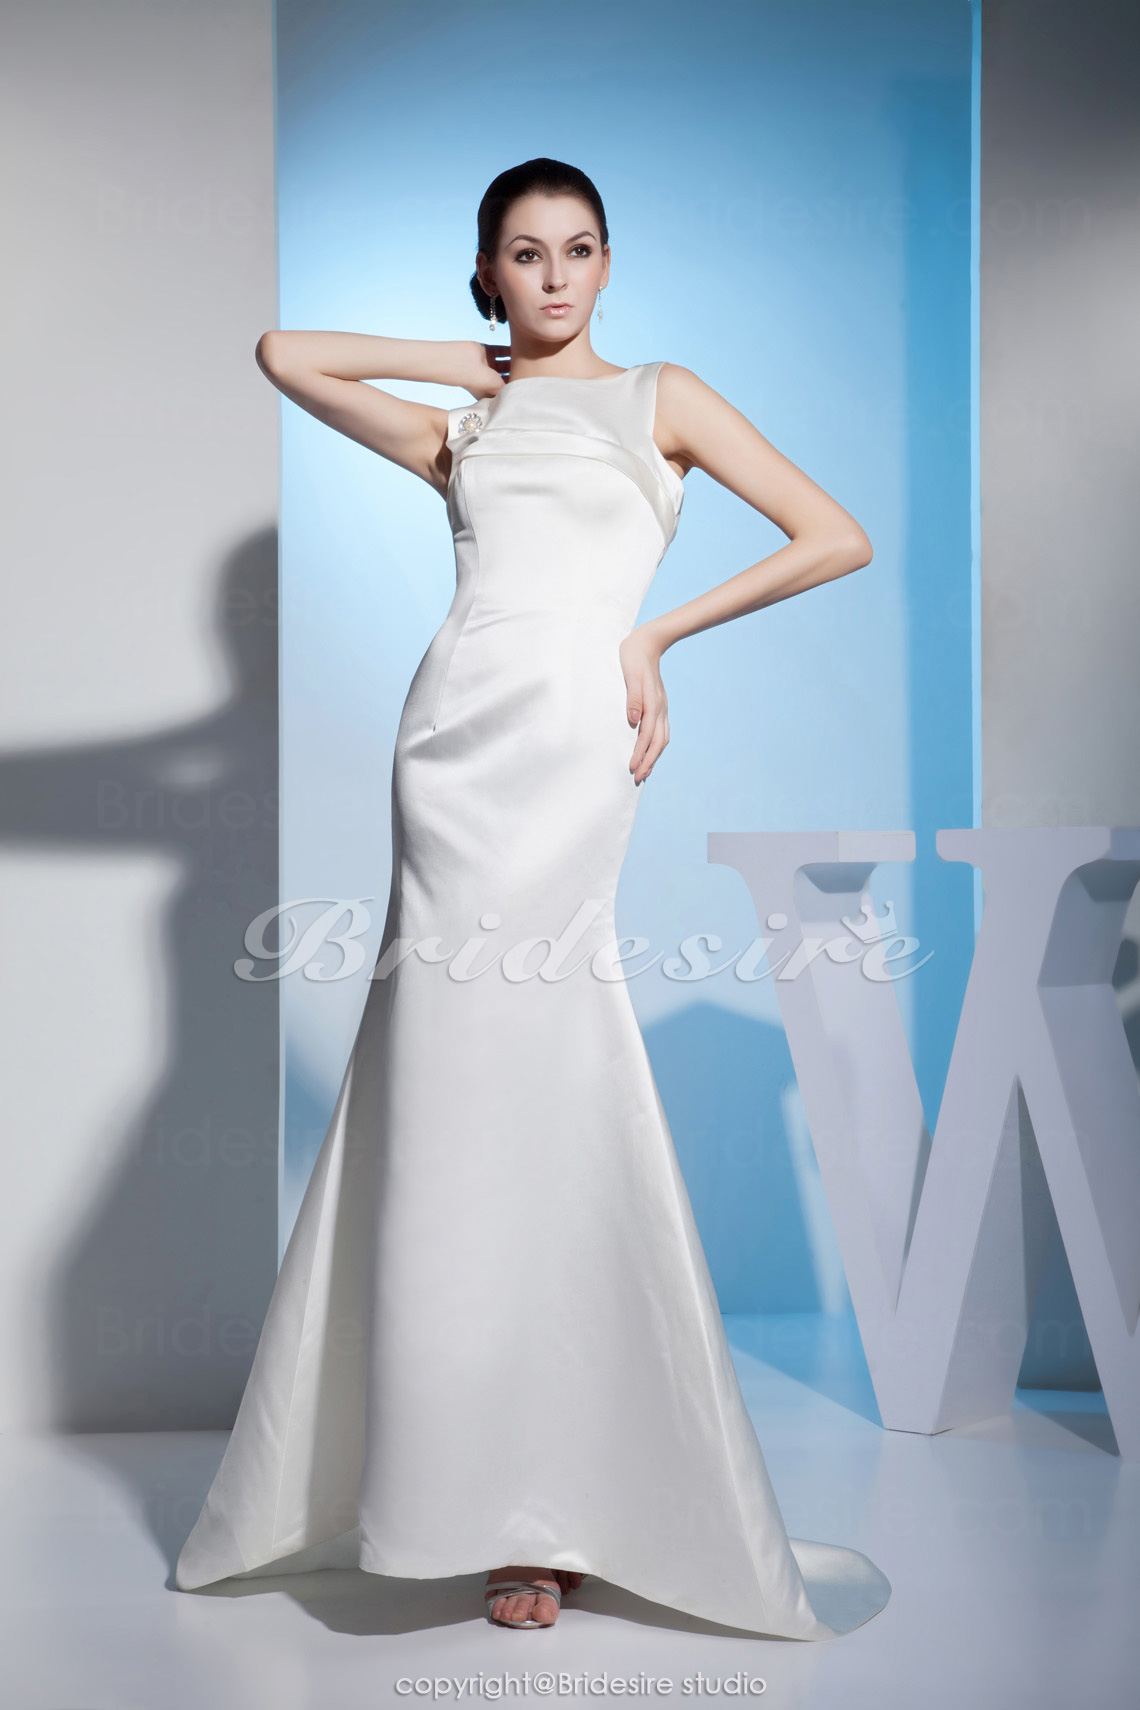 Trumpet/Mermaid Bateau Floor-length Sleeveless Satin Dress